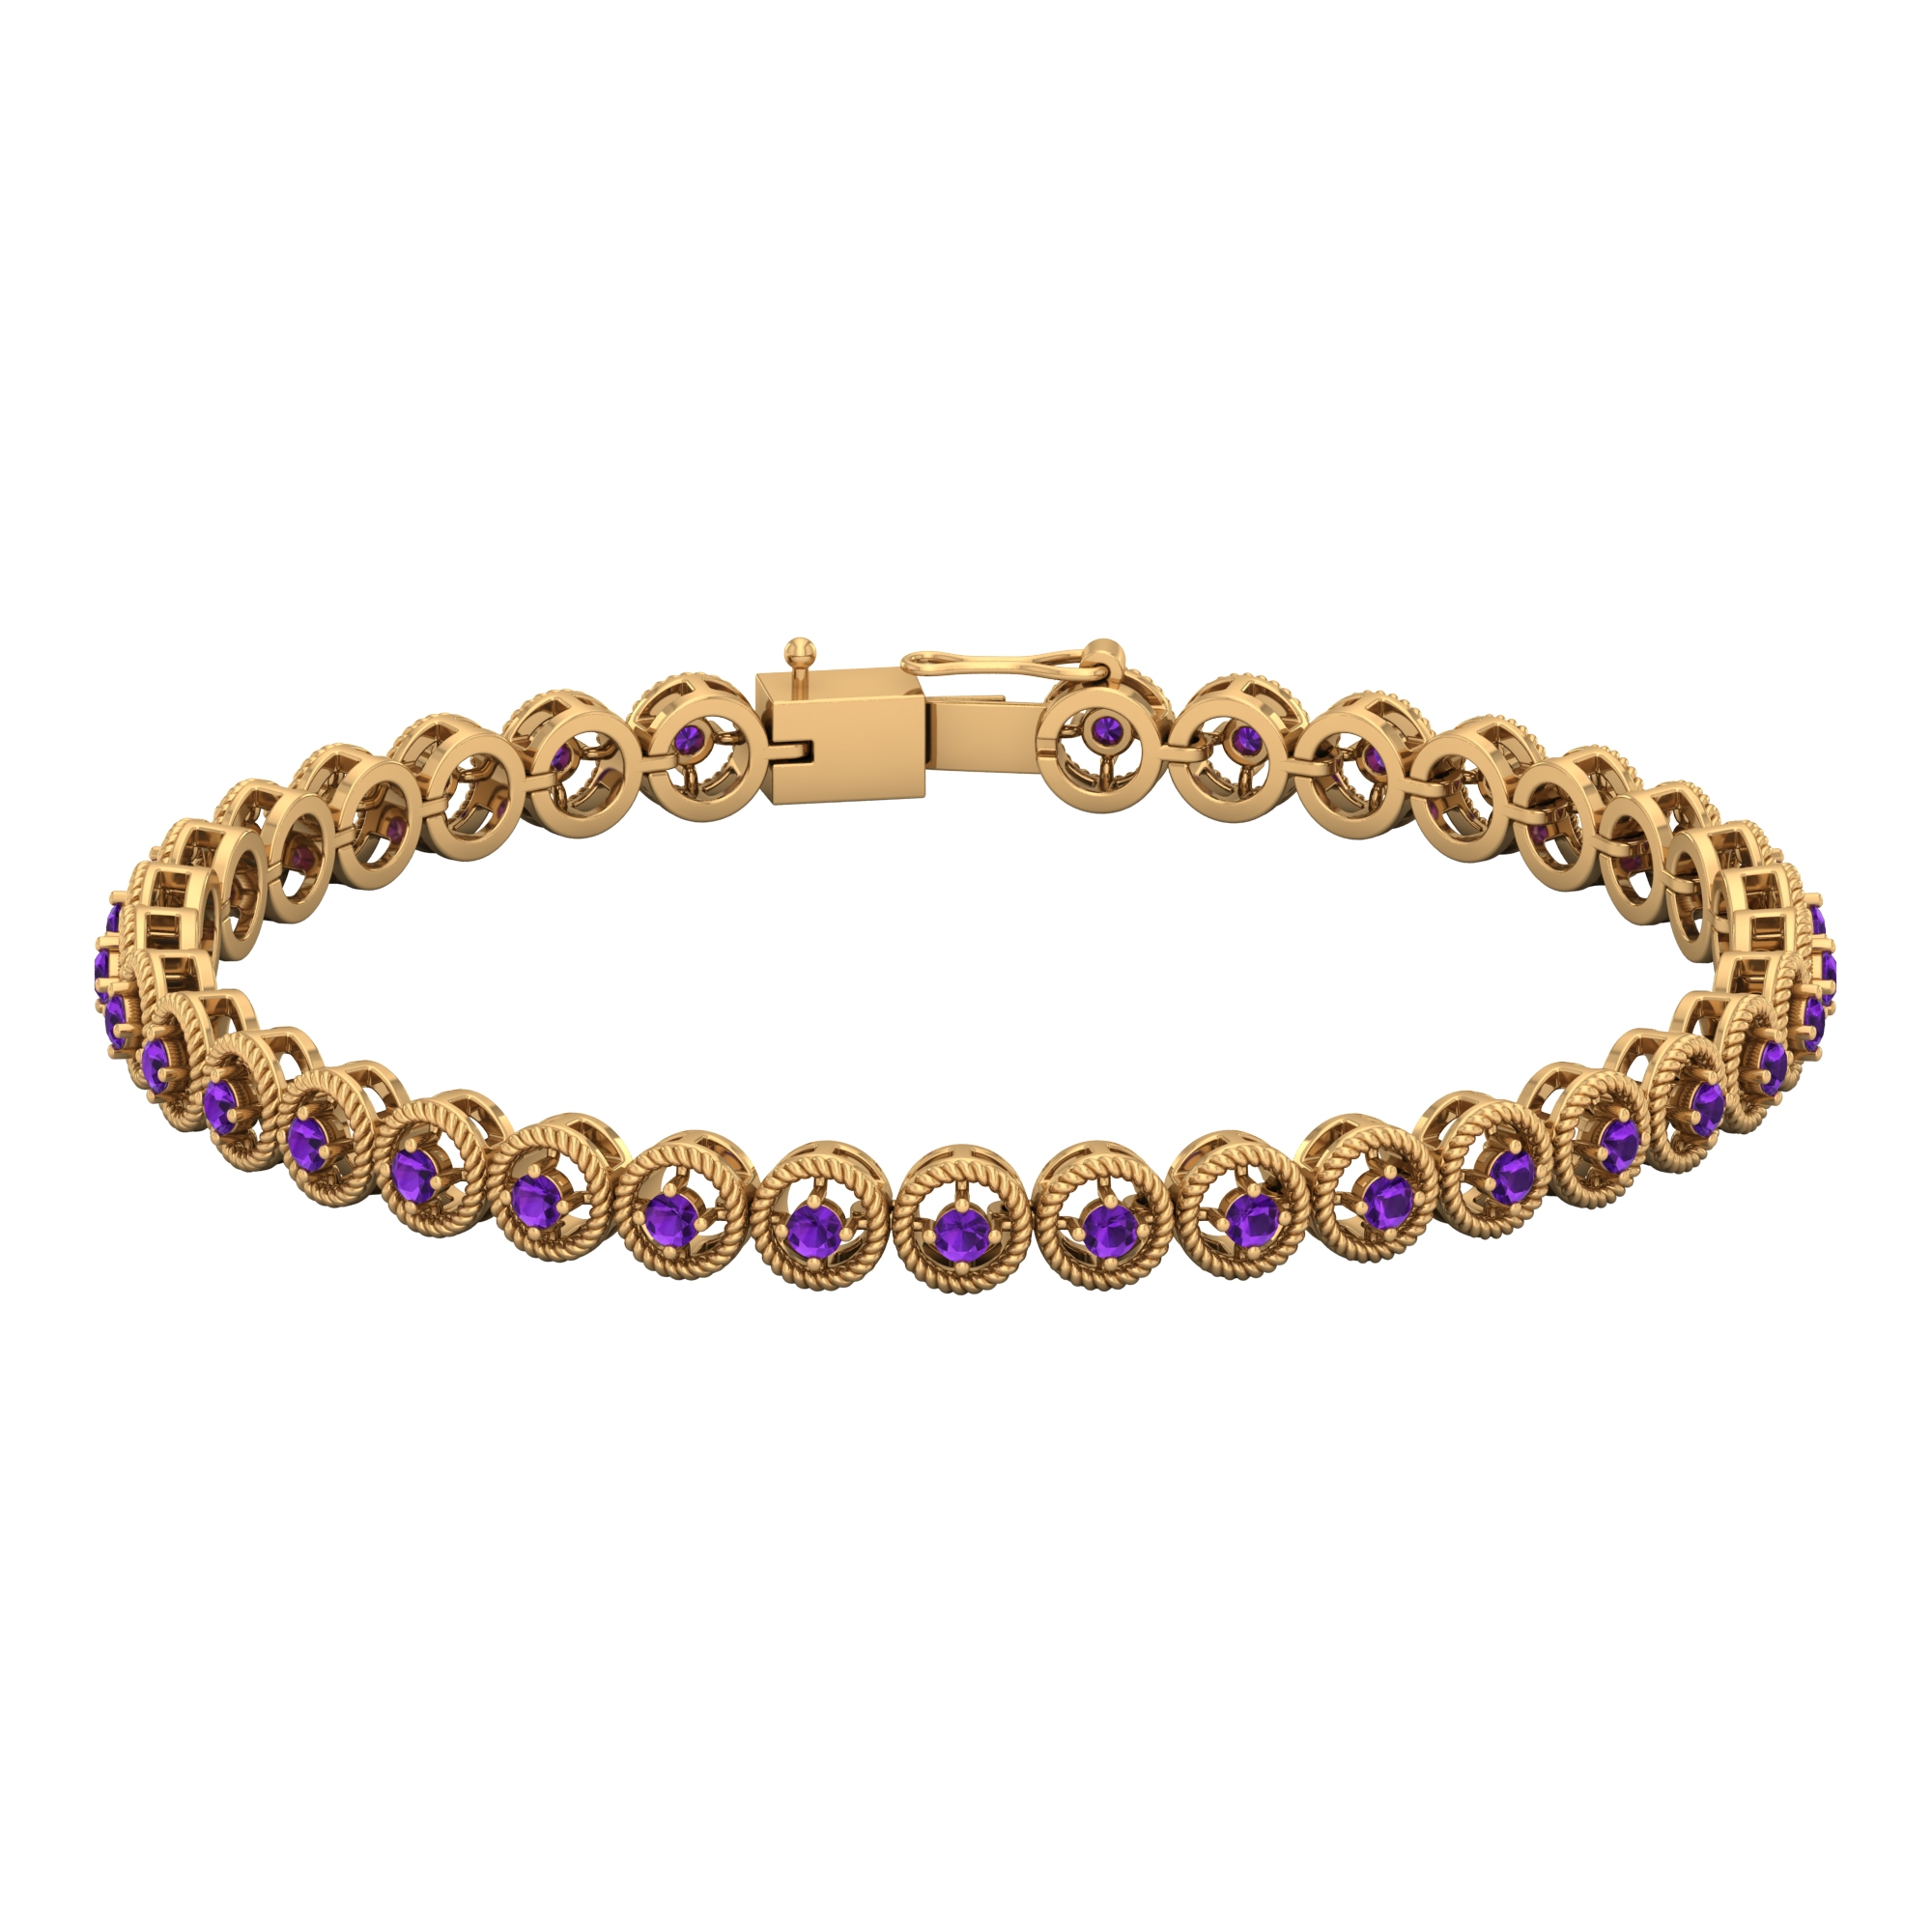 1.50 CT Amethyst Unisex Tennis Bracelet with Gold Twisted Rope Detailing